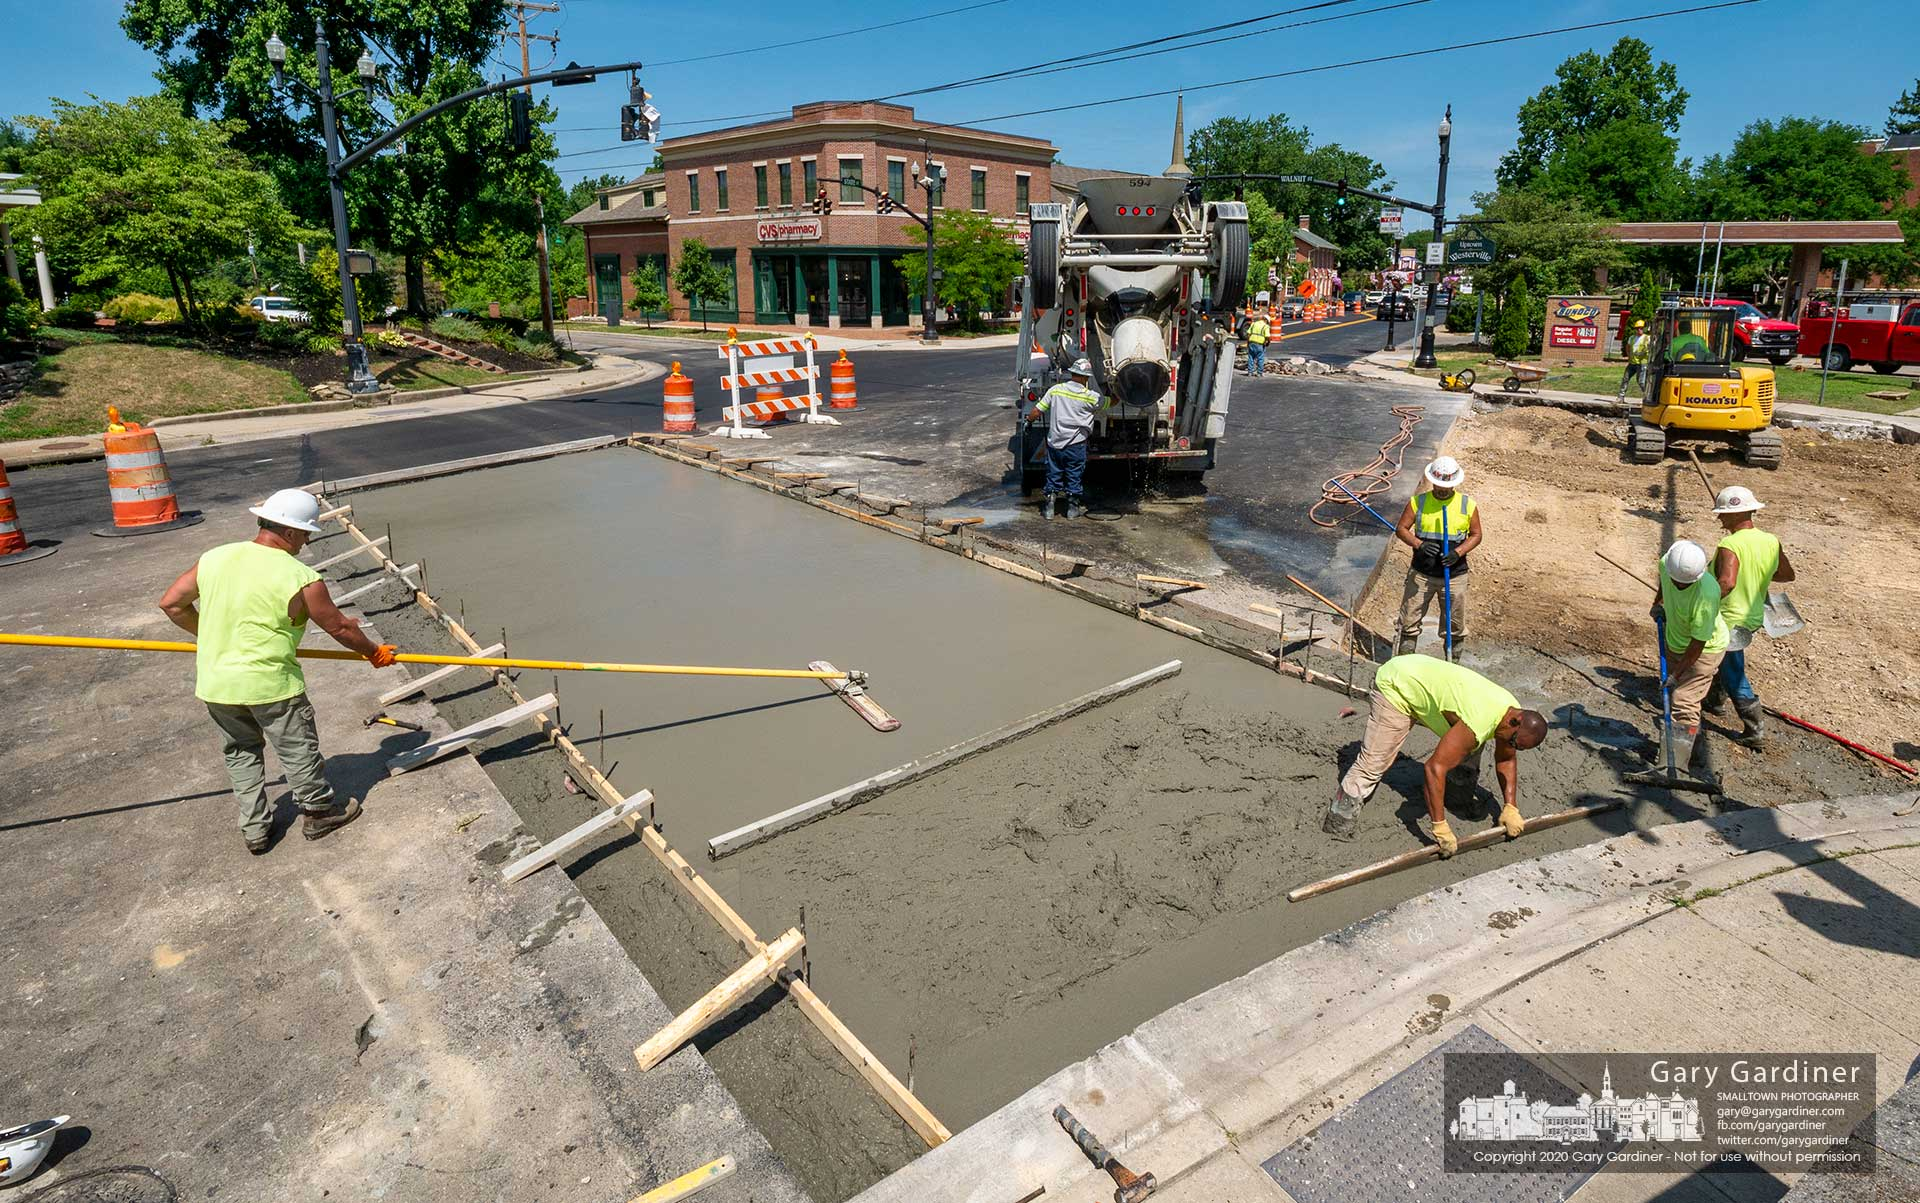 A work crew levels concrete poured into a section of the roadway on State Street at Walnut where a brick crosswalk will be built. My Final Photo for July 21, 2020.